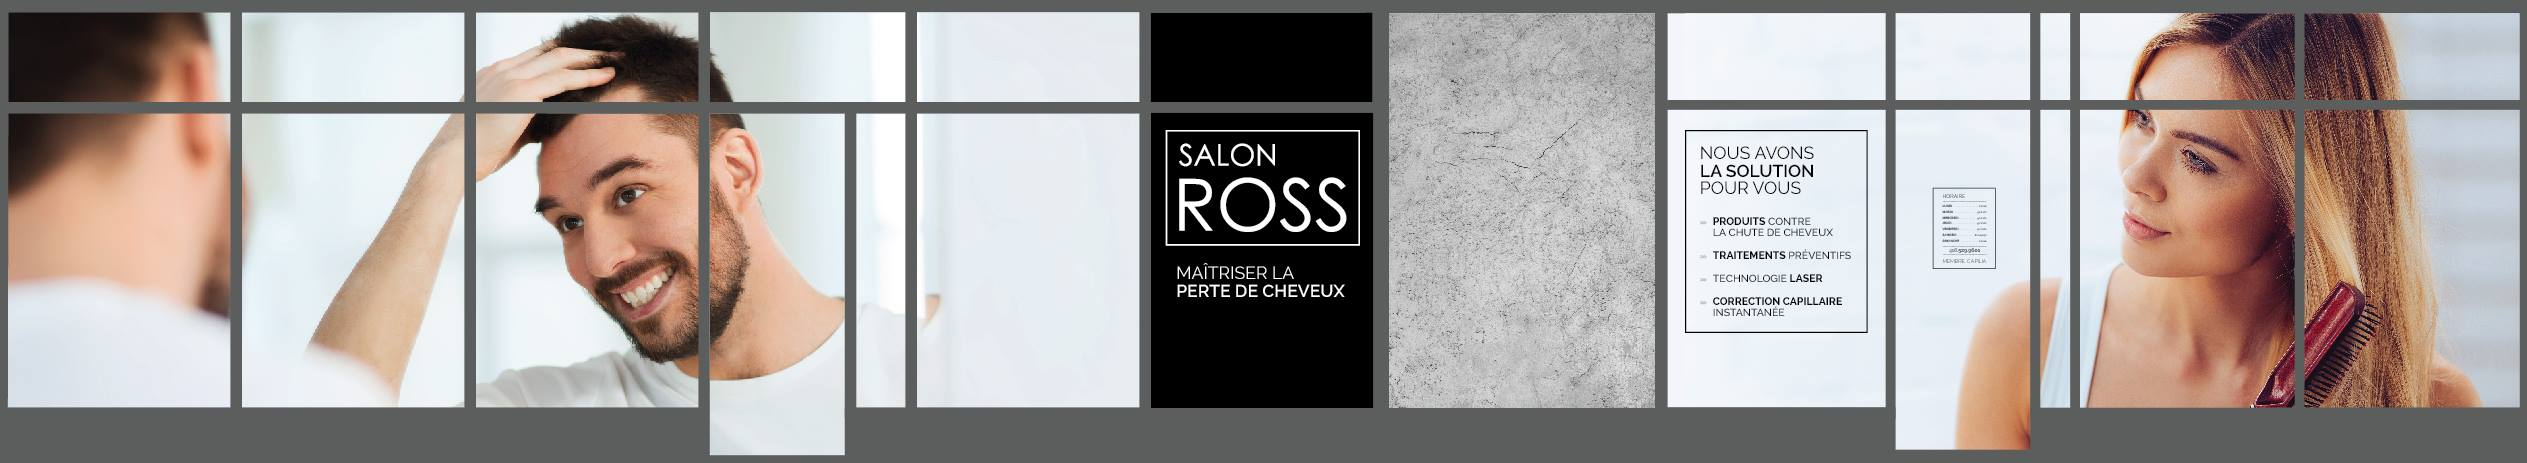 Vitrine Salon ROSS - Complet